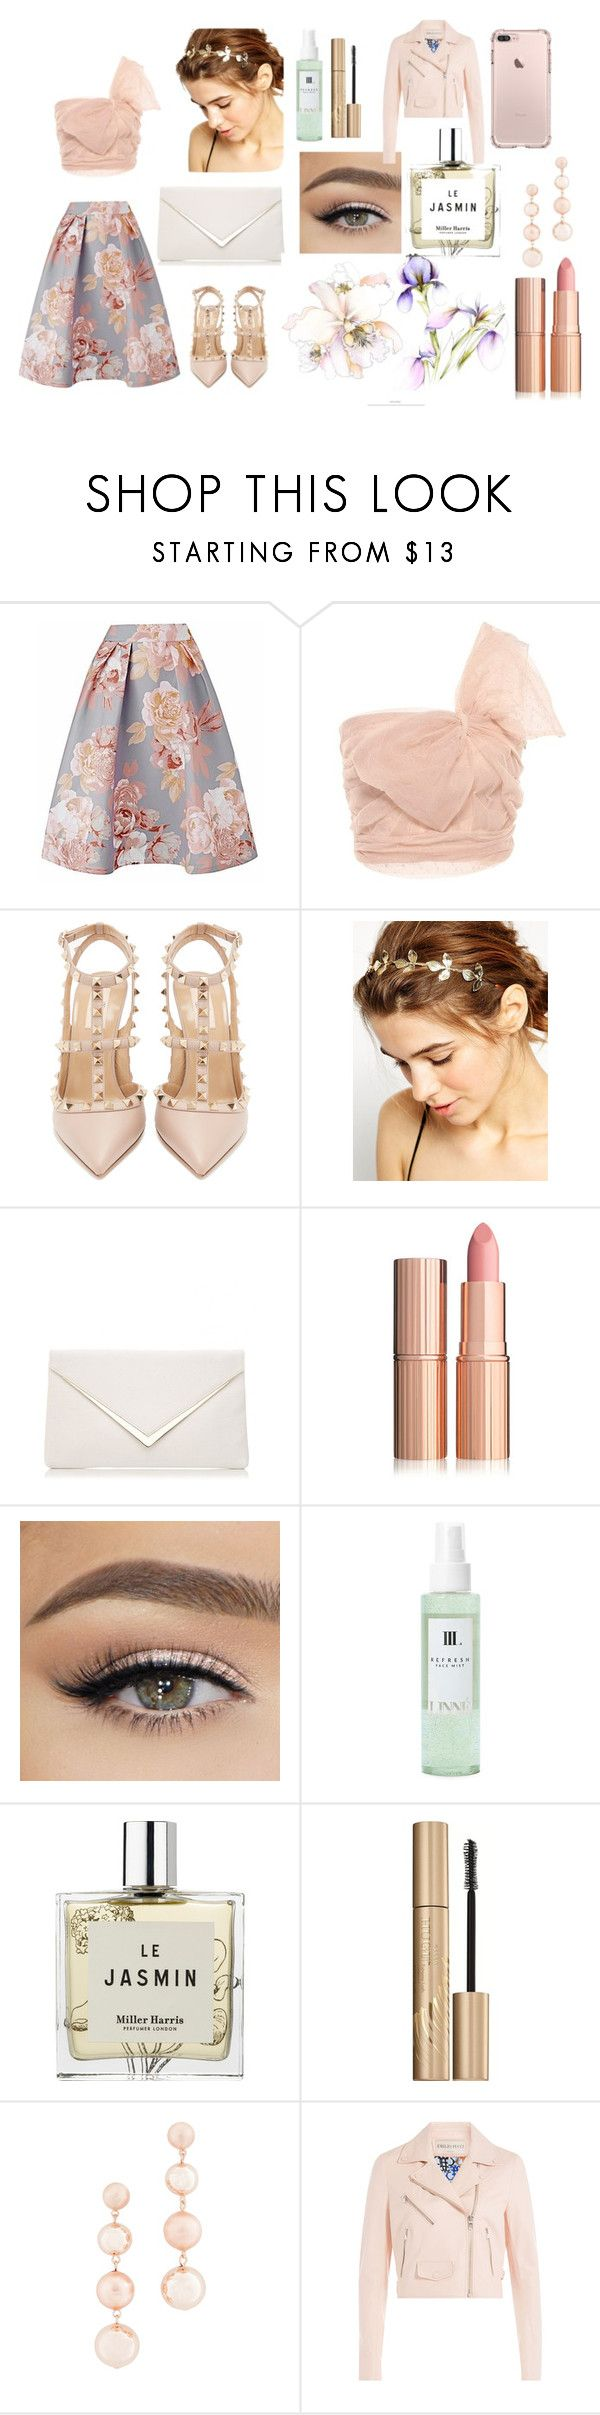 """""""Untitled #70"""" by clarza ❤ liked on Polyvore featuring RED Valentino, Valentino, WithChic, Linne, Miller Harris, Stila, Rebecca Minkoff and Emilio Pucci"""